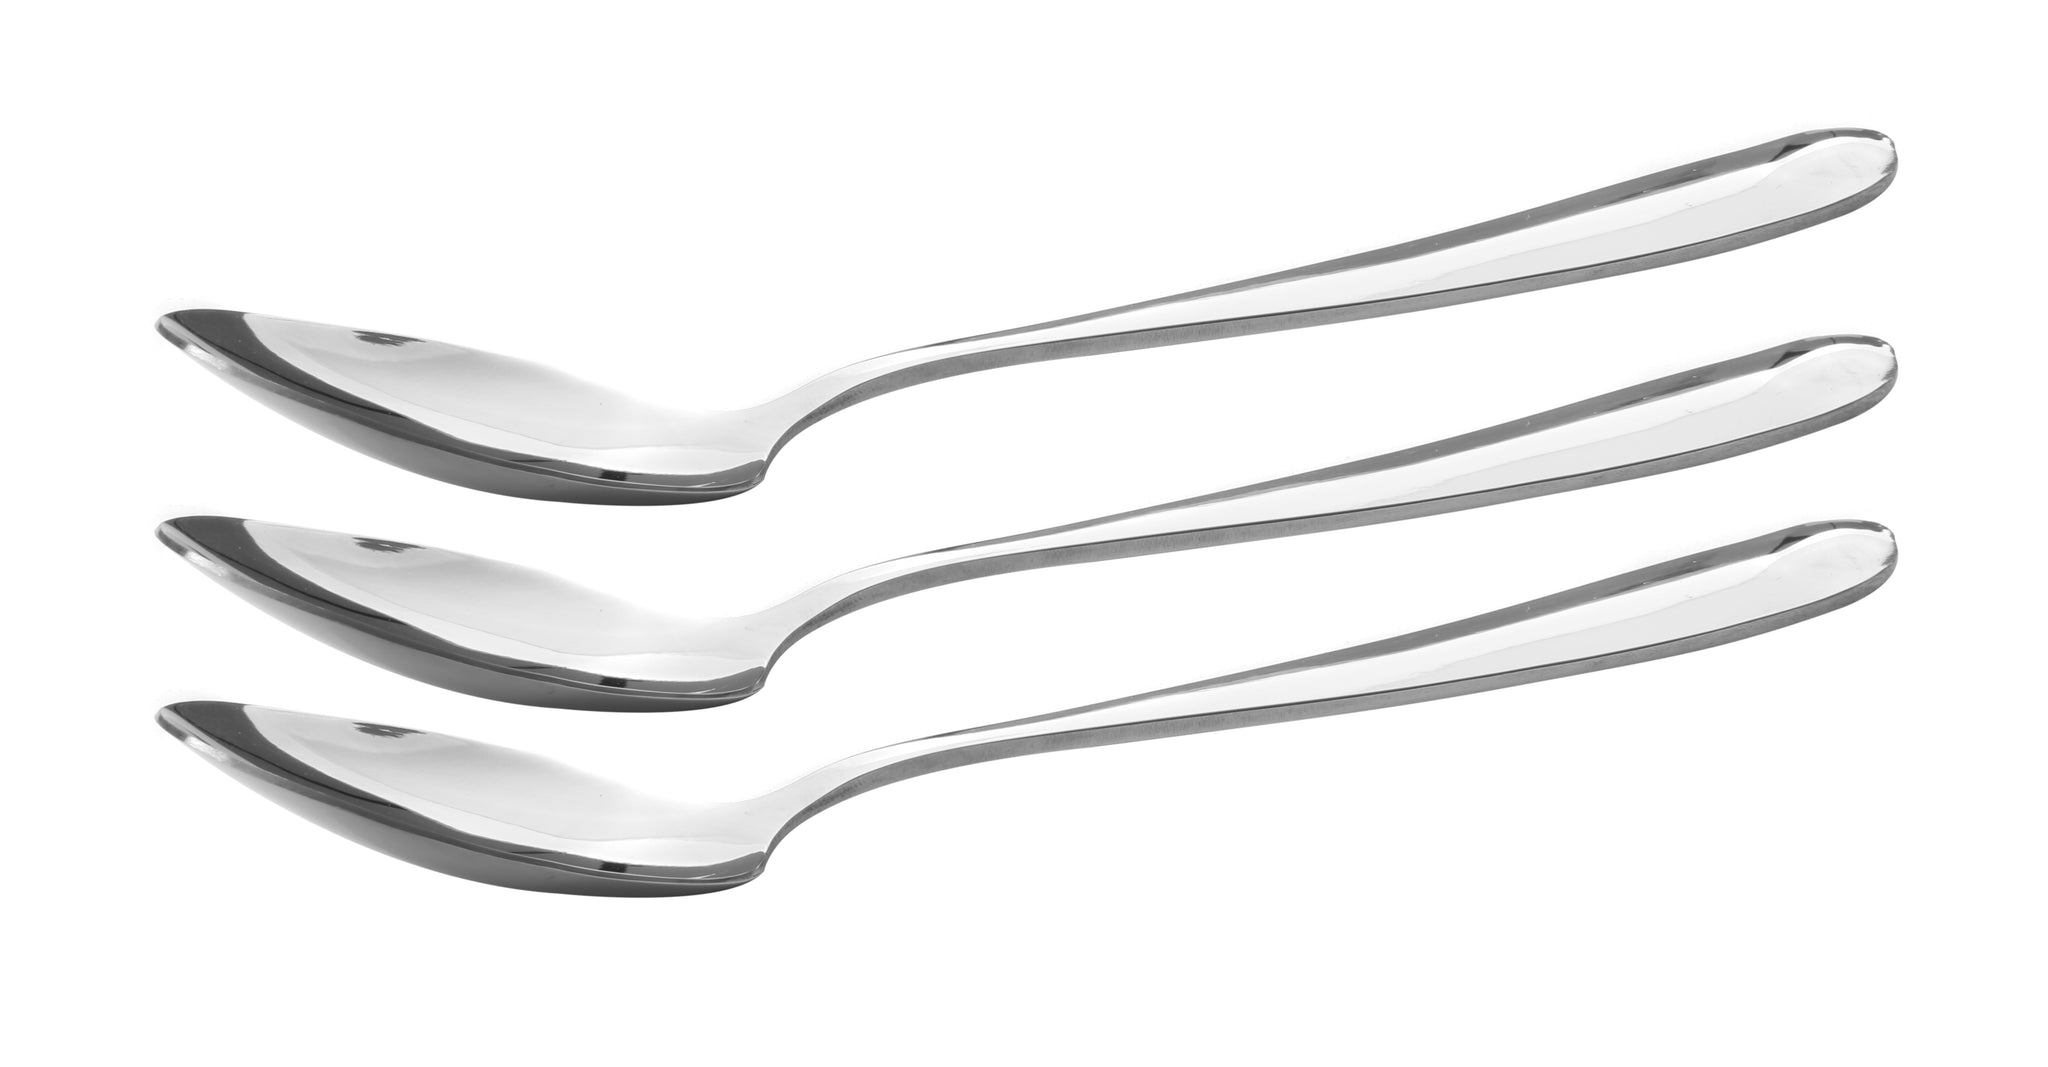 Royalford RF4138 TS Table Spoon Set, 3 Pcs